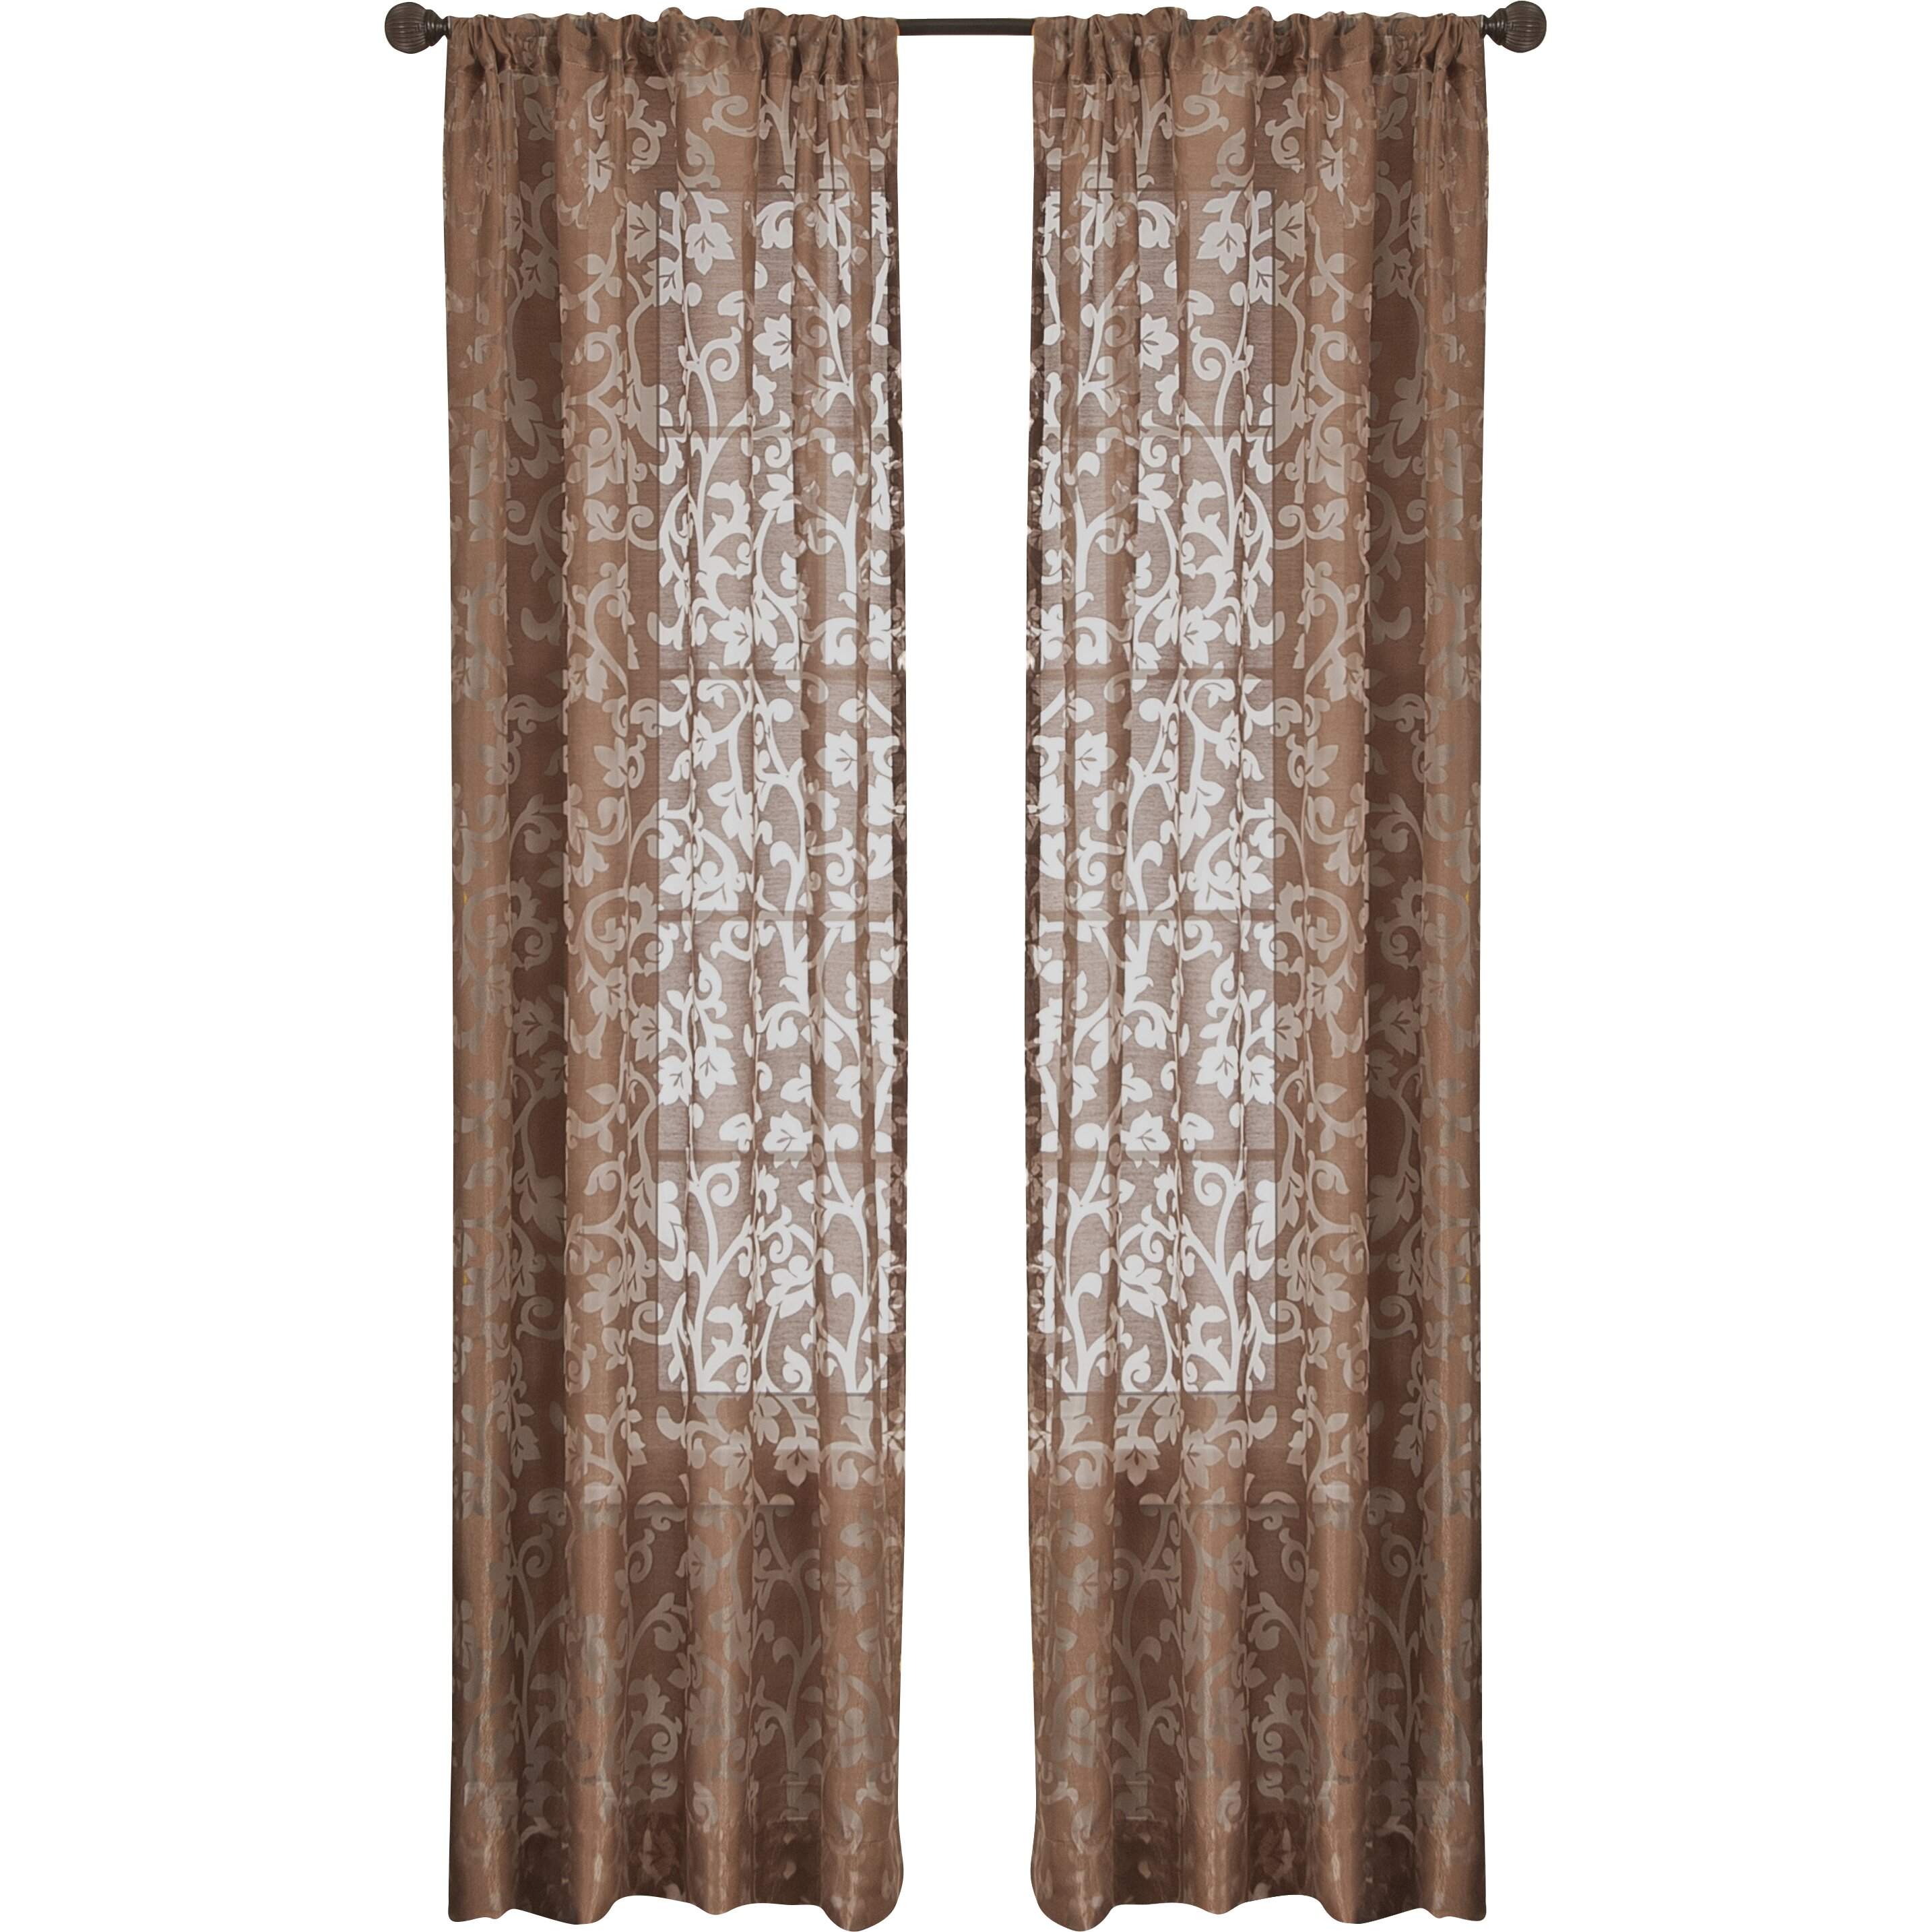 Curtains meaning 2